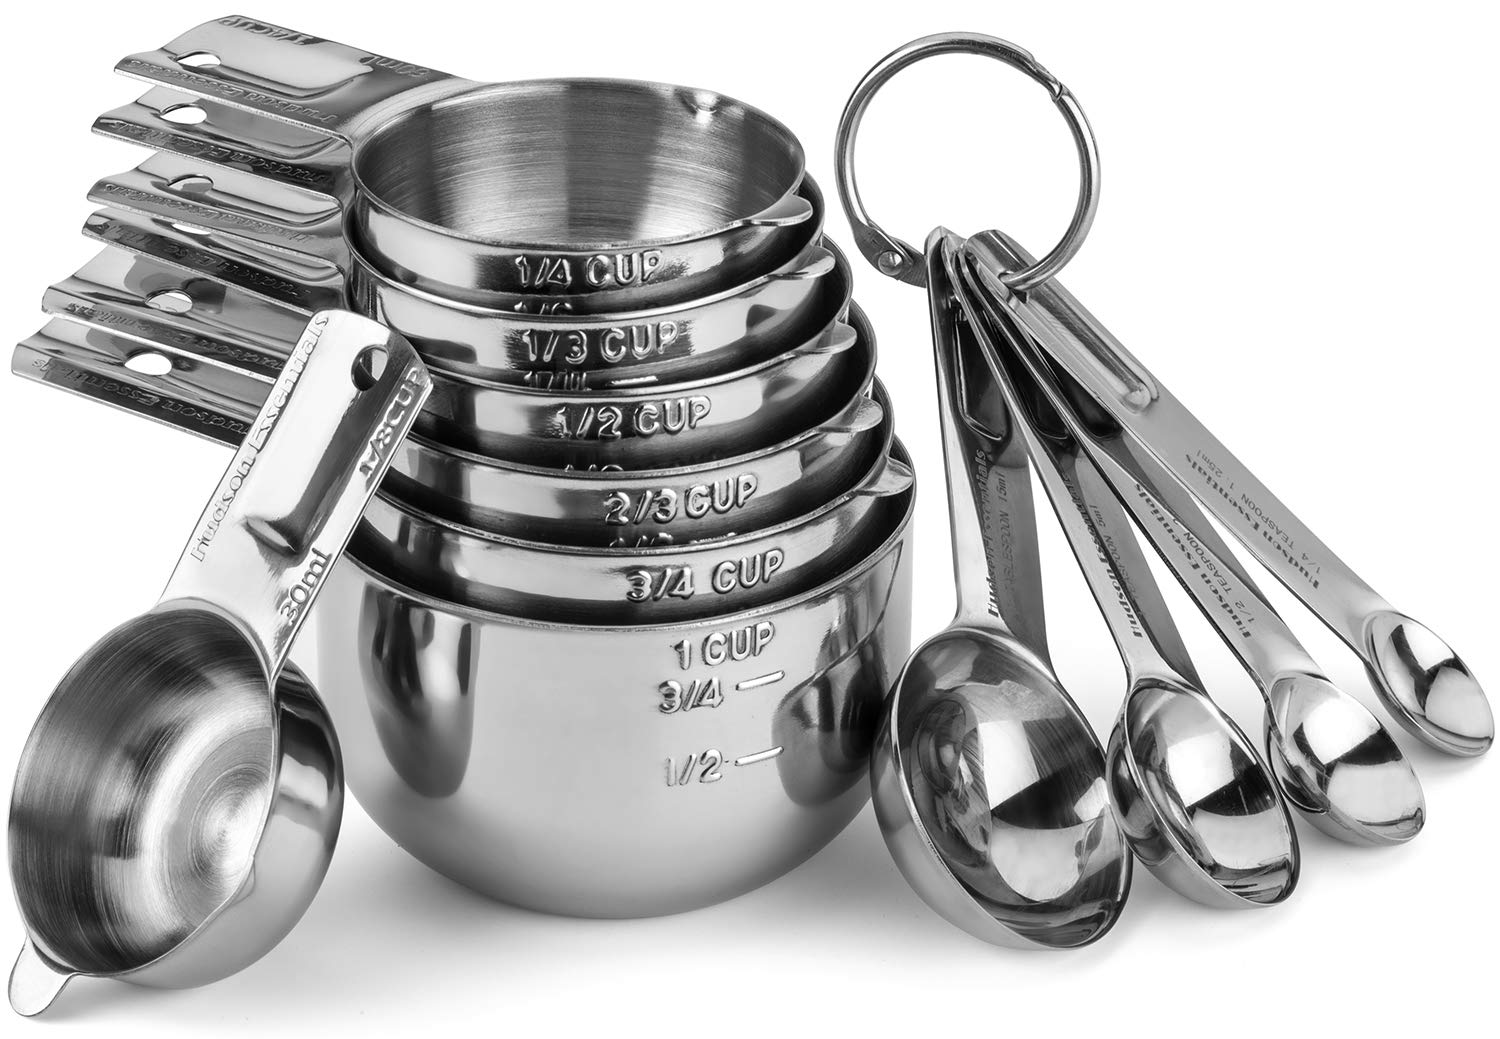 Hudson Essentials Stainless Steel Measuring Cups and Spoons Set - Stackable Set with Spout (11 Piece Set)